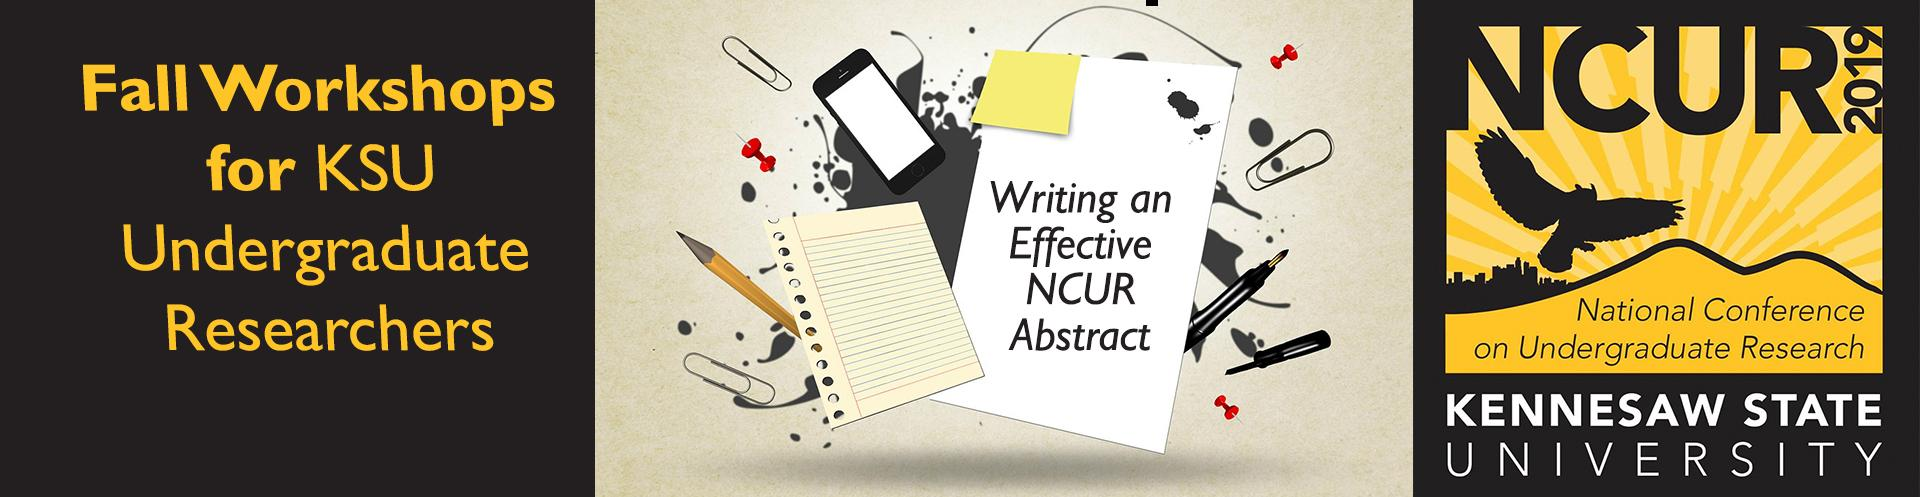 Abstract Writing Workshops for KSU Undergraduates